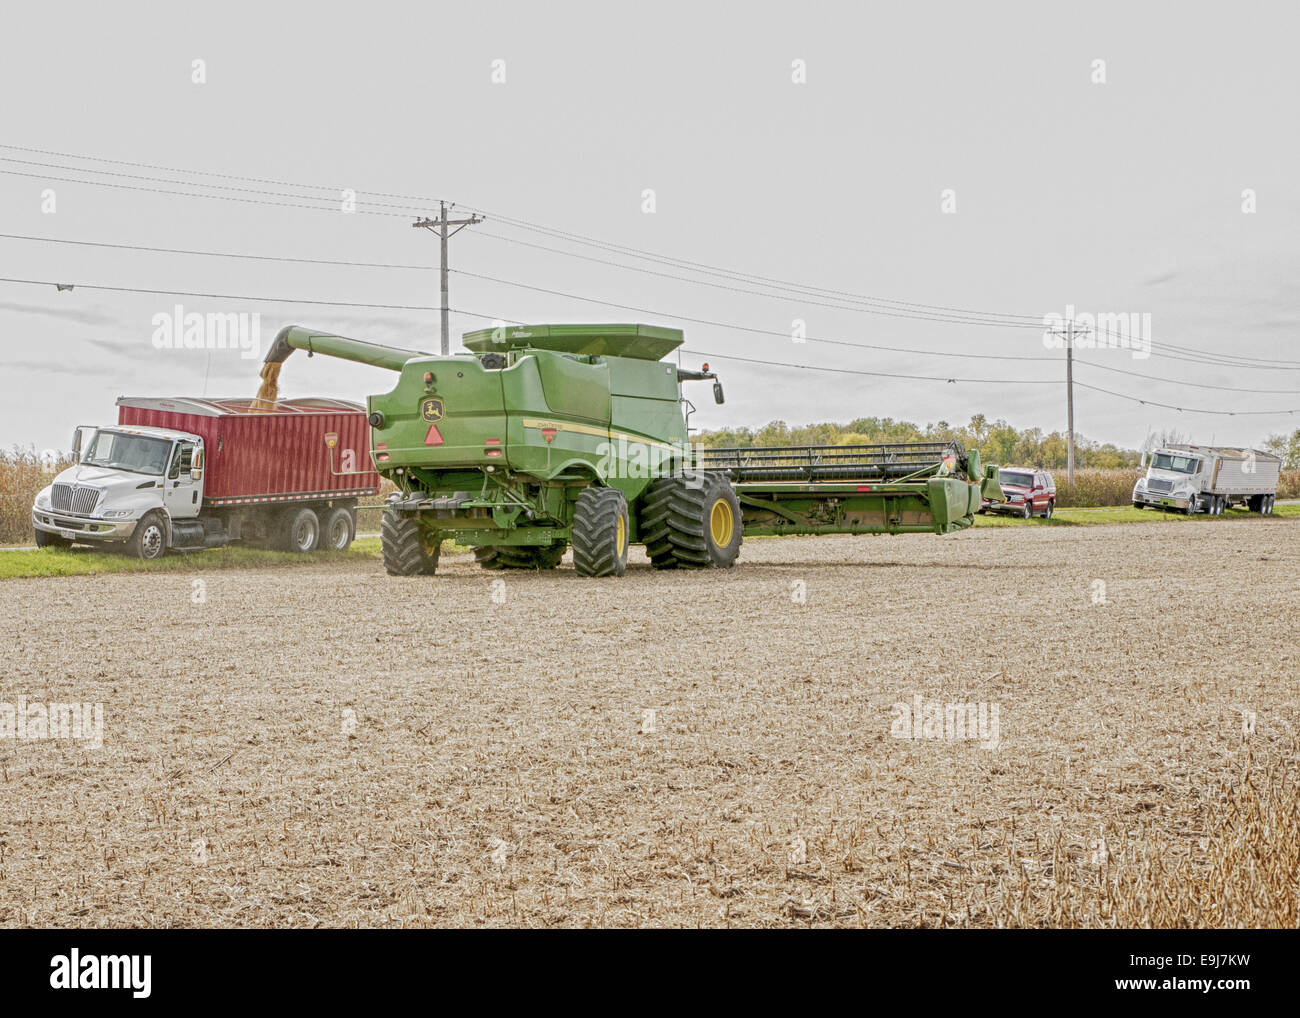 John Deere S670 combine is dumping its soybean load from the hopper into a waiting truck. - Stock Image